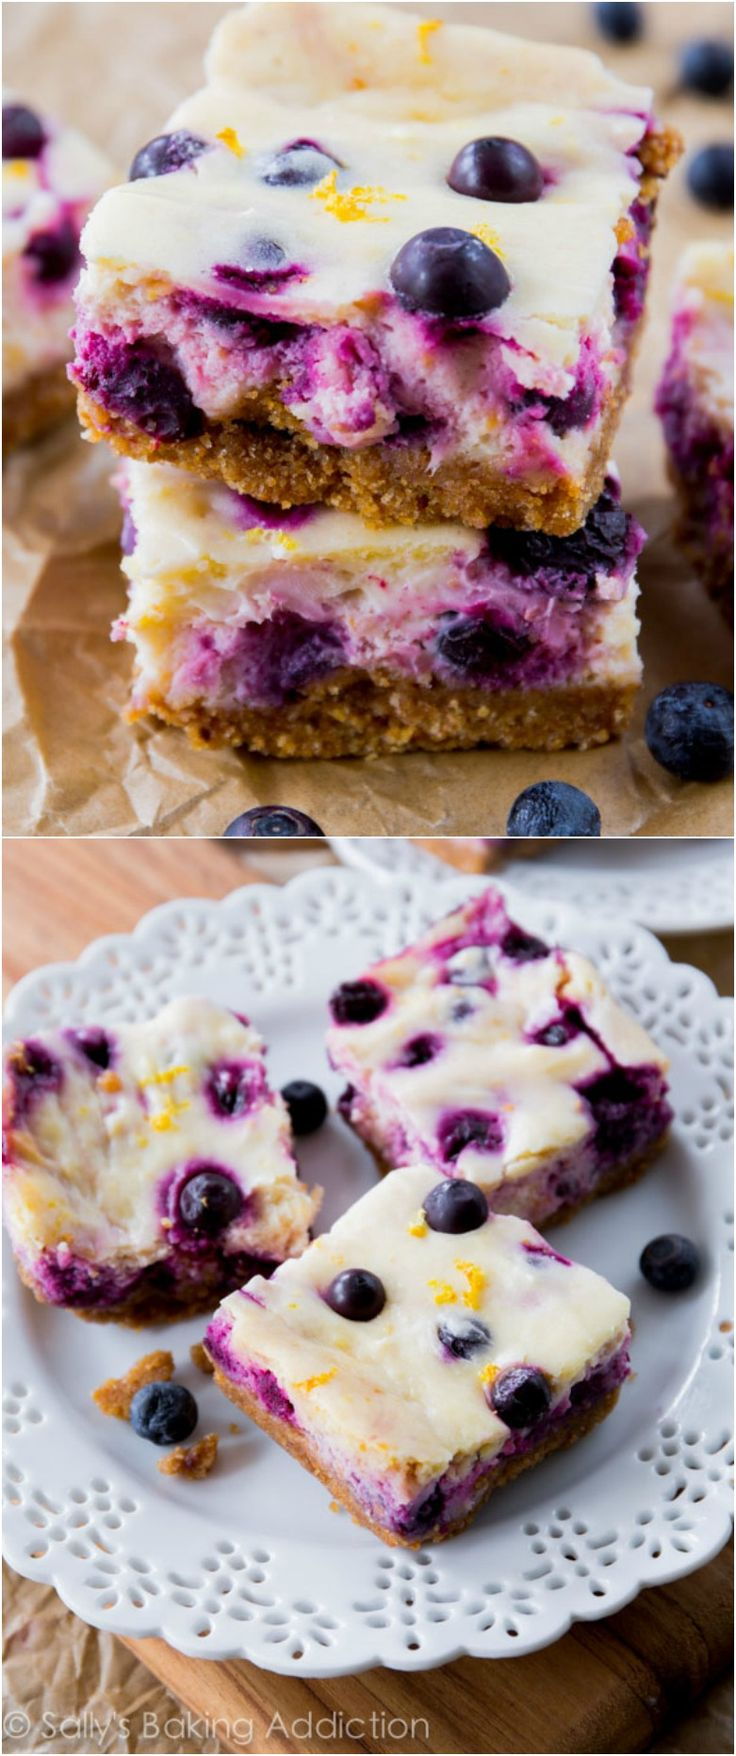 Creamy lemon cheesecake bars dotted and swirled with juicy blueberries. All on top of my favorite buttery graham cracker crust!